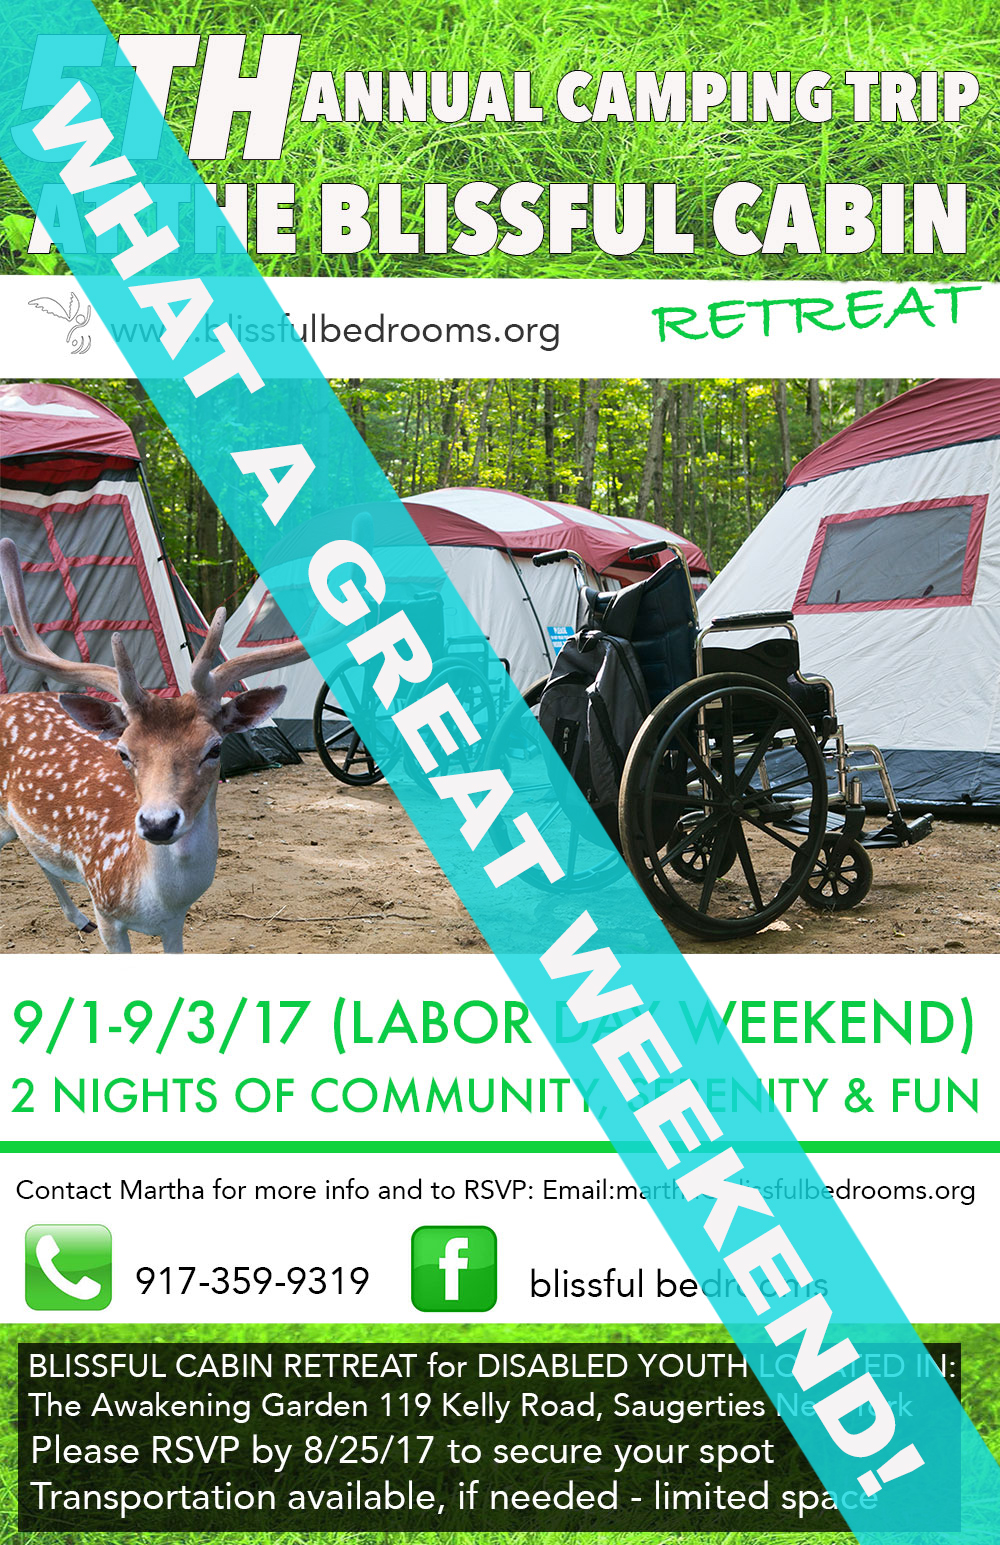 BB-5TH-ANNUAL-CAMPING-TRIP-2017-AFTER FLYER-